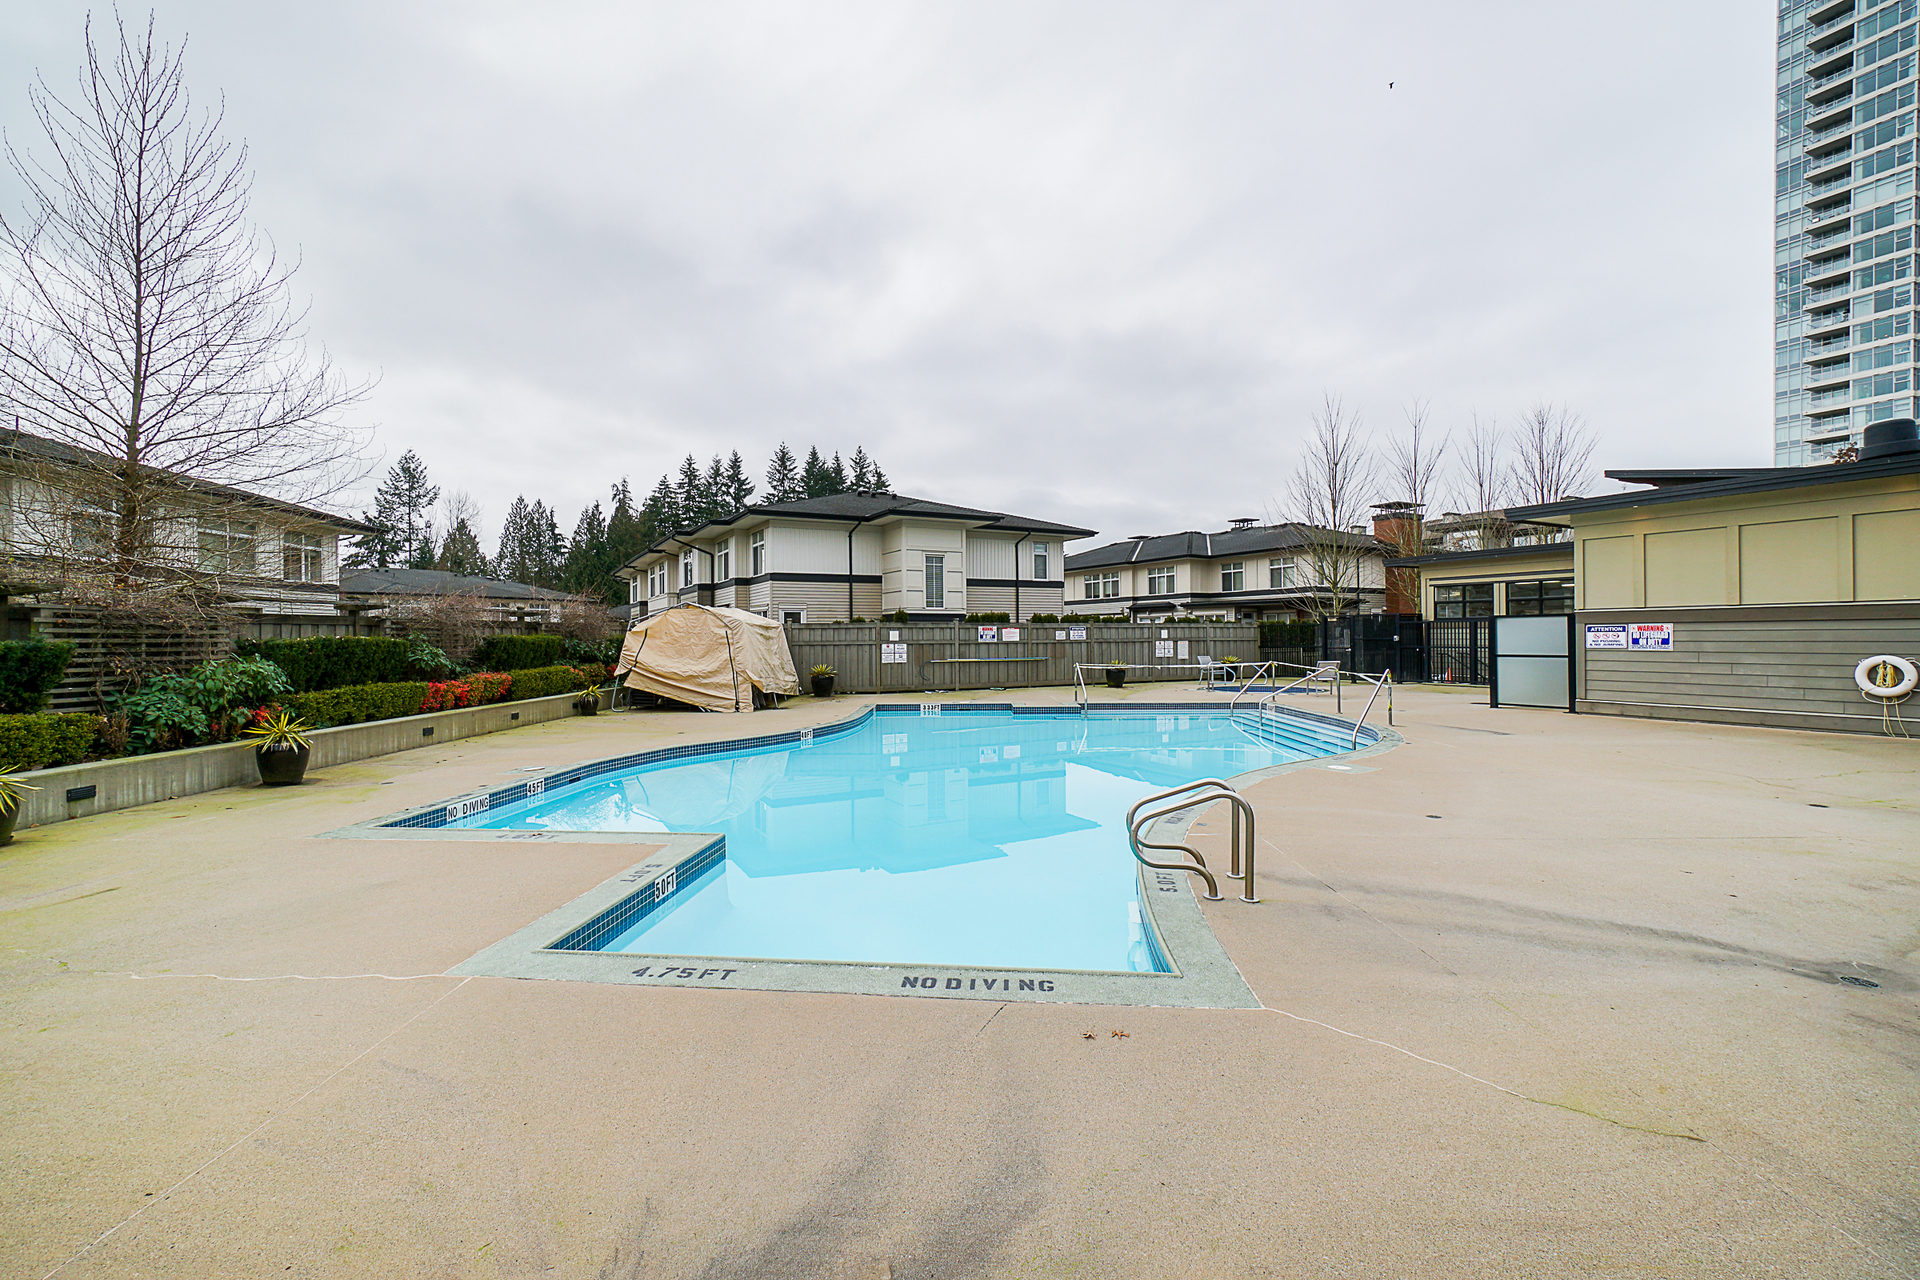 unit-2705-3093-windsor-gate-coquitlam-37 at 2705 - 3093 Windsor Gate, New Horizons, Coquitlam